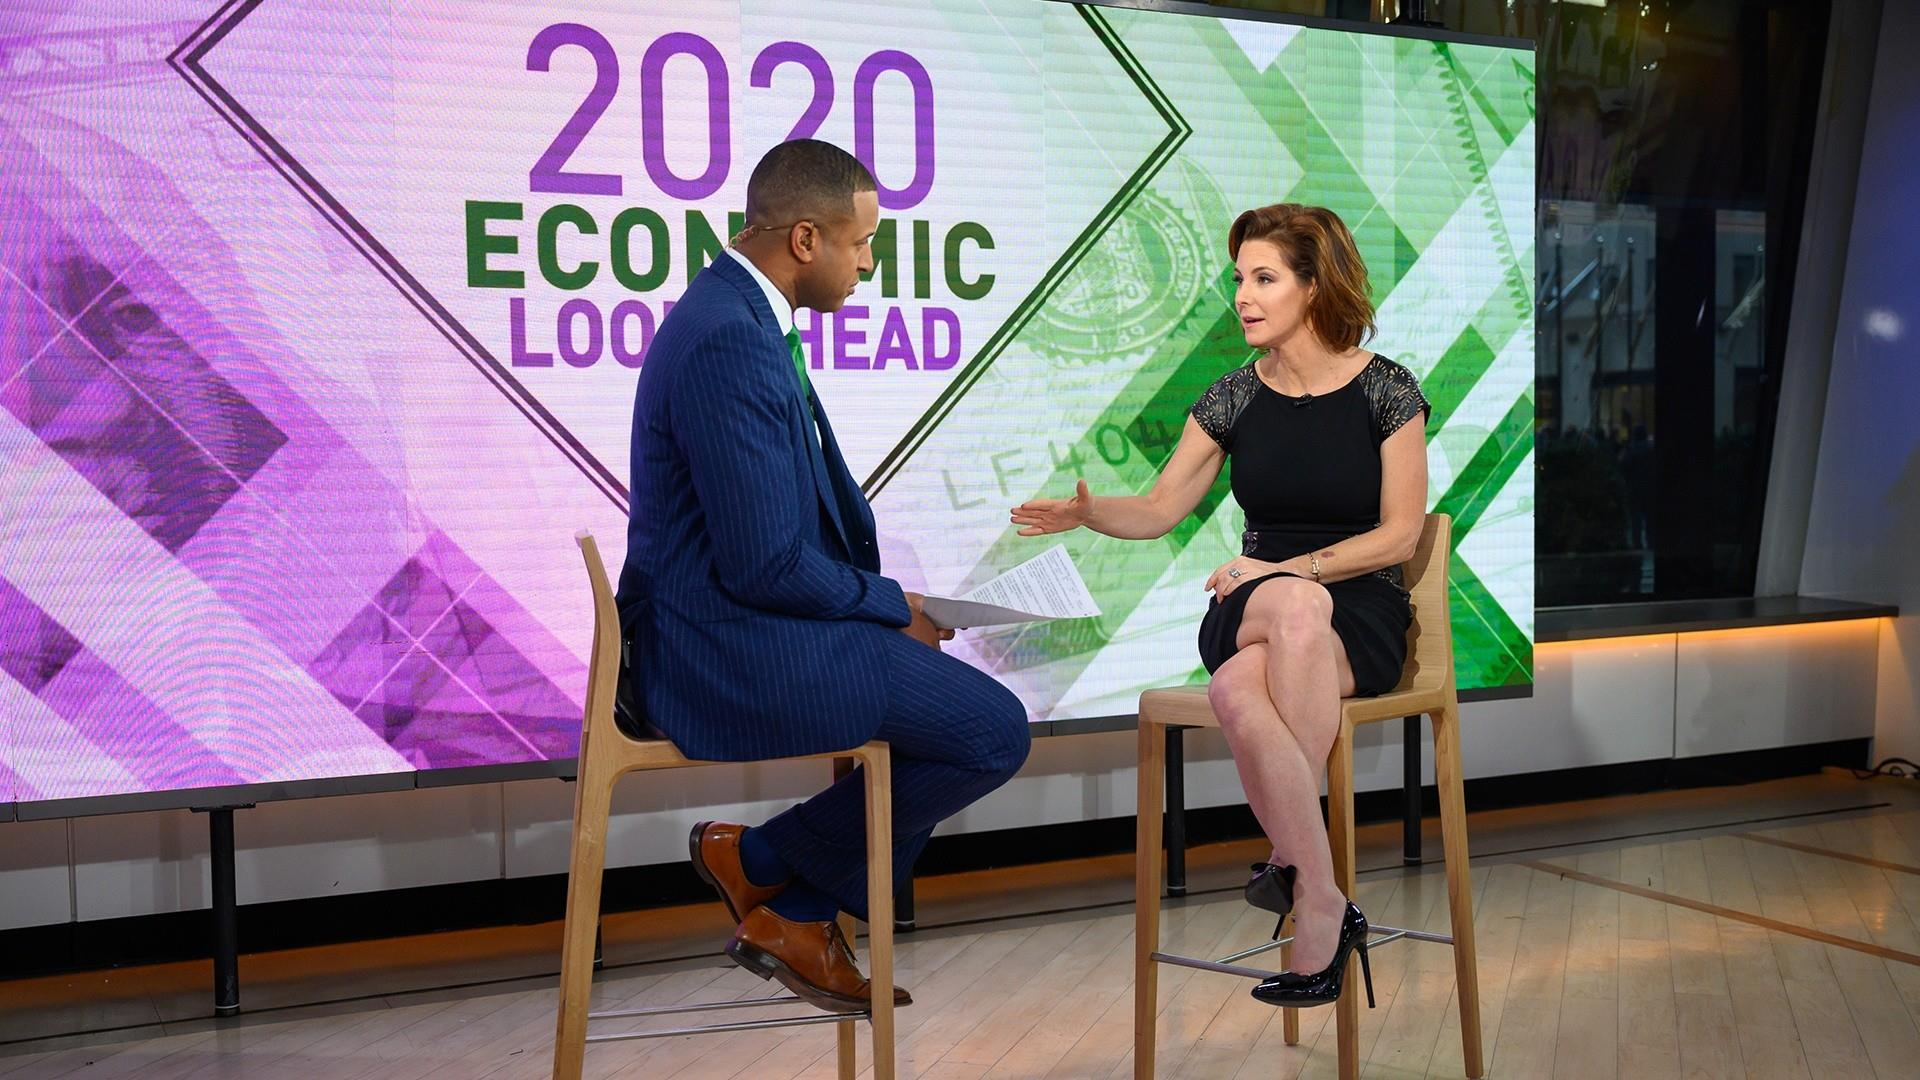 Money in 2020: Could a recession really be coming?